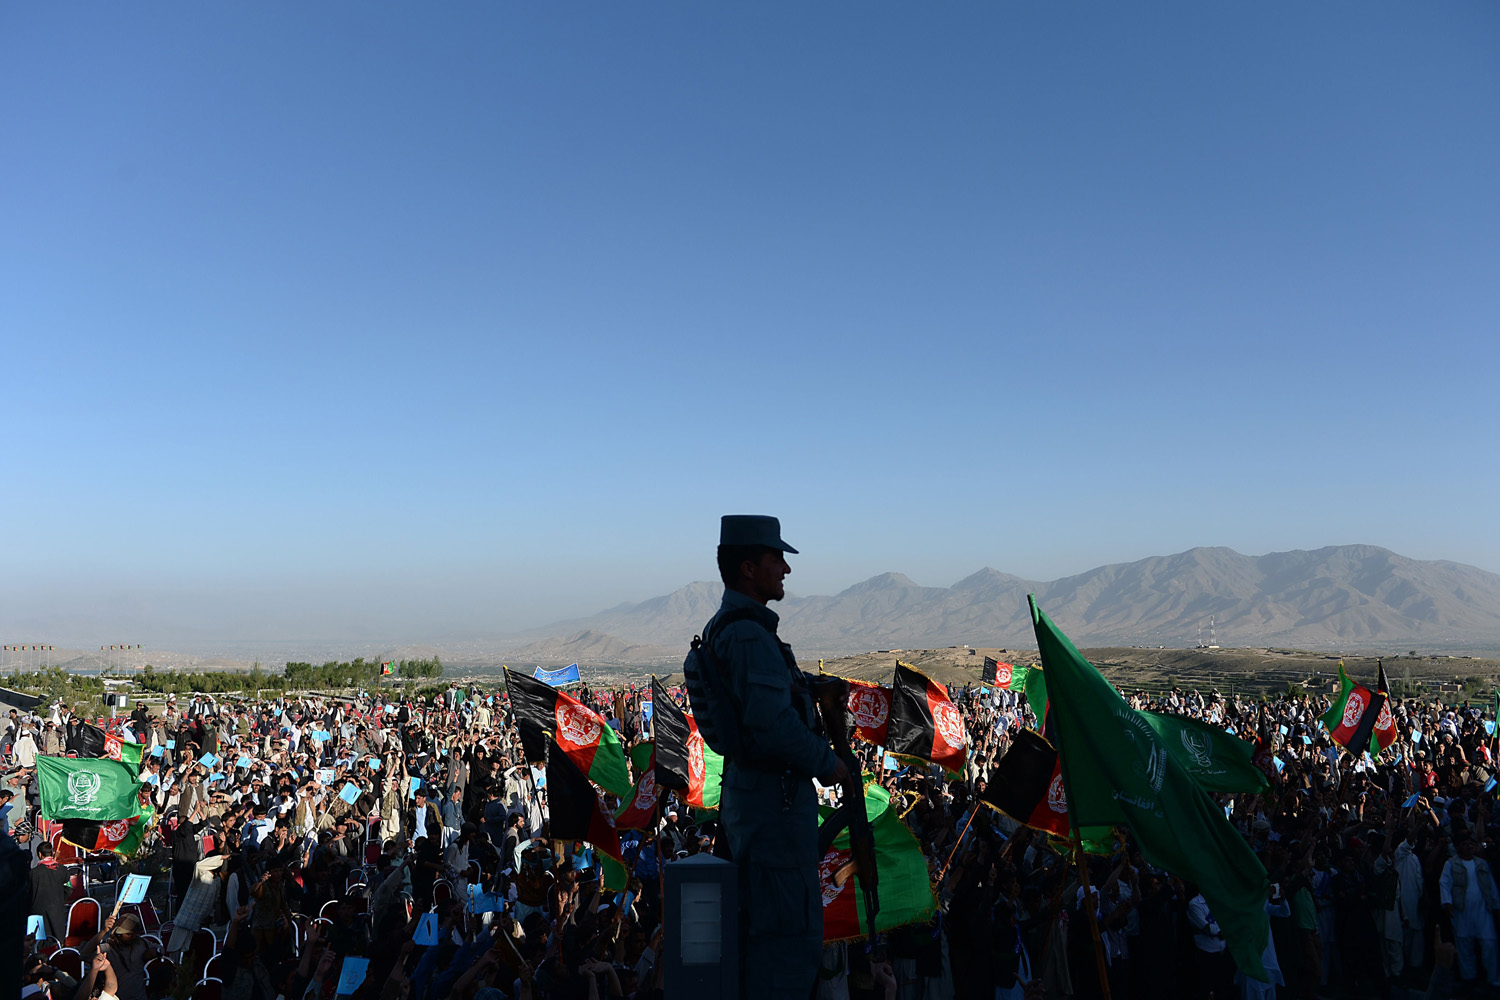 Jun. 9, 2014. An Afghan policeman keeps watch as supporters of presidential candidate Abdullah Abdullah cheer during an election campaign rally in Paghman district of Kabul province.